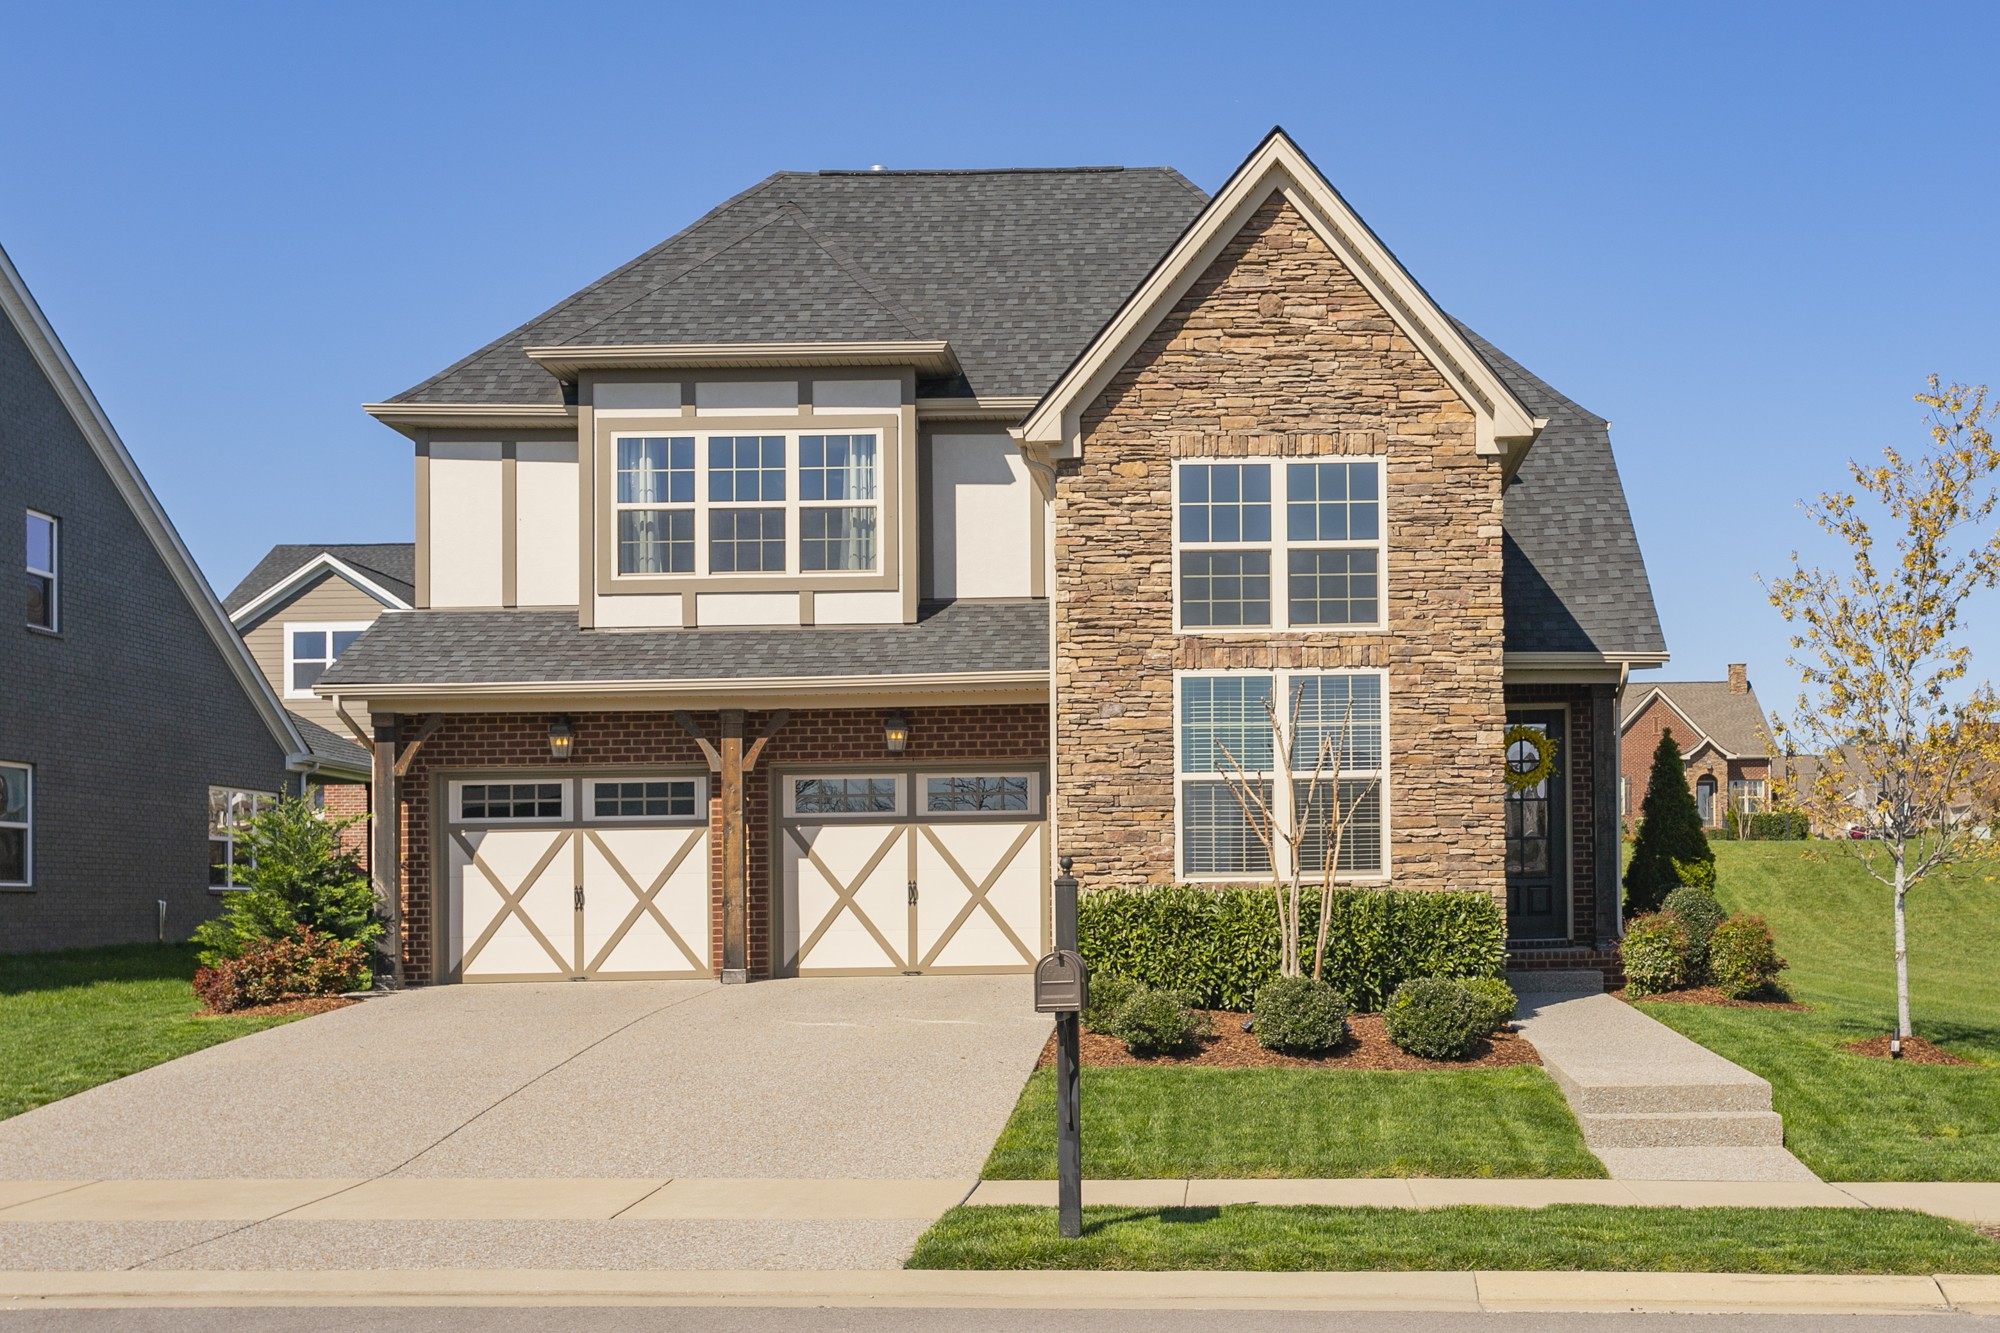 *Multiple Offers--Highest/ Best due Sunday 4/11@ 6pm* Open House Sunday 1-3! RARE move-in ready opportunity in the highly coveted Millstone Subdivision!  This practically new Lincoln Tudor is loaded w/ contemporary features and builder upgrades. This home features and open concept kitchen/ dining/ living room space w/ tons of natural light. Over-sized bonus room, covered outdoor living space, luxury owners retreat with huge walk-in closet space, and tons of Storage. 2-car garage. Community Pool!